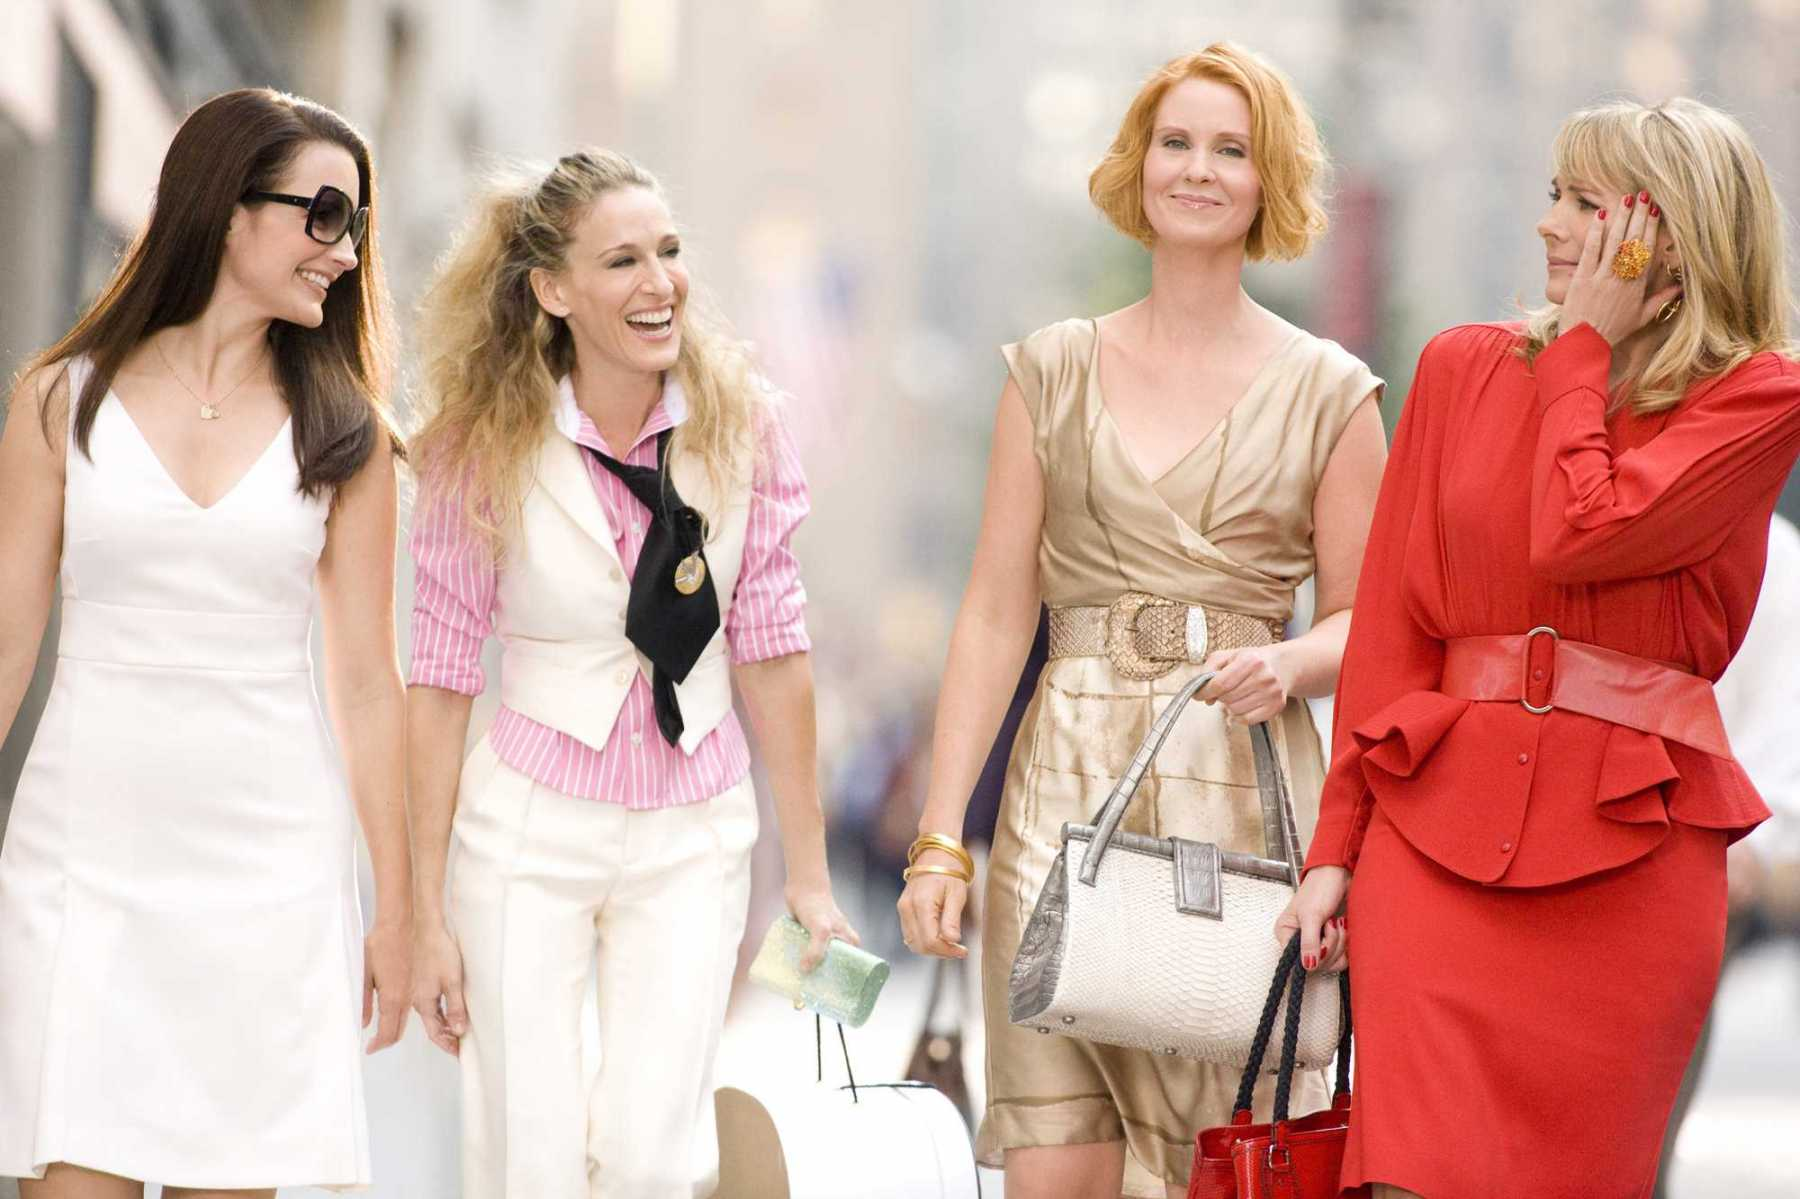 Sarah Jessica Parker Adds Fuel To Rumour Mill Of Sex And The City 3